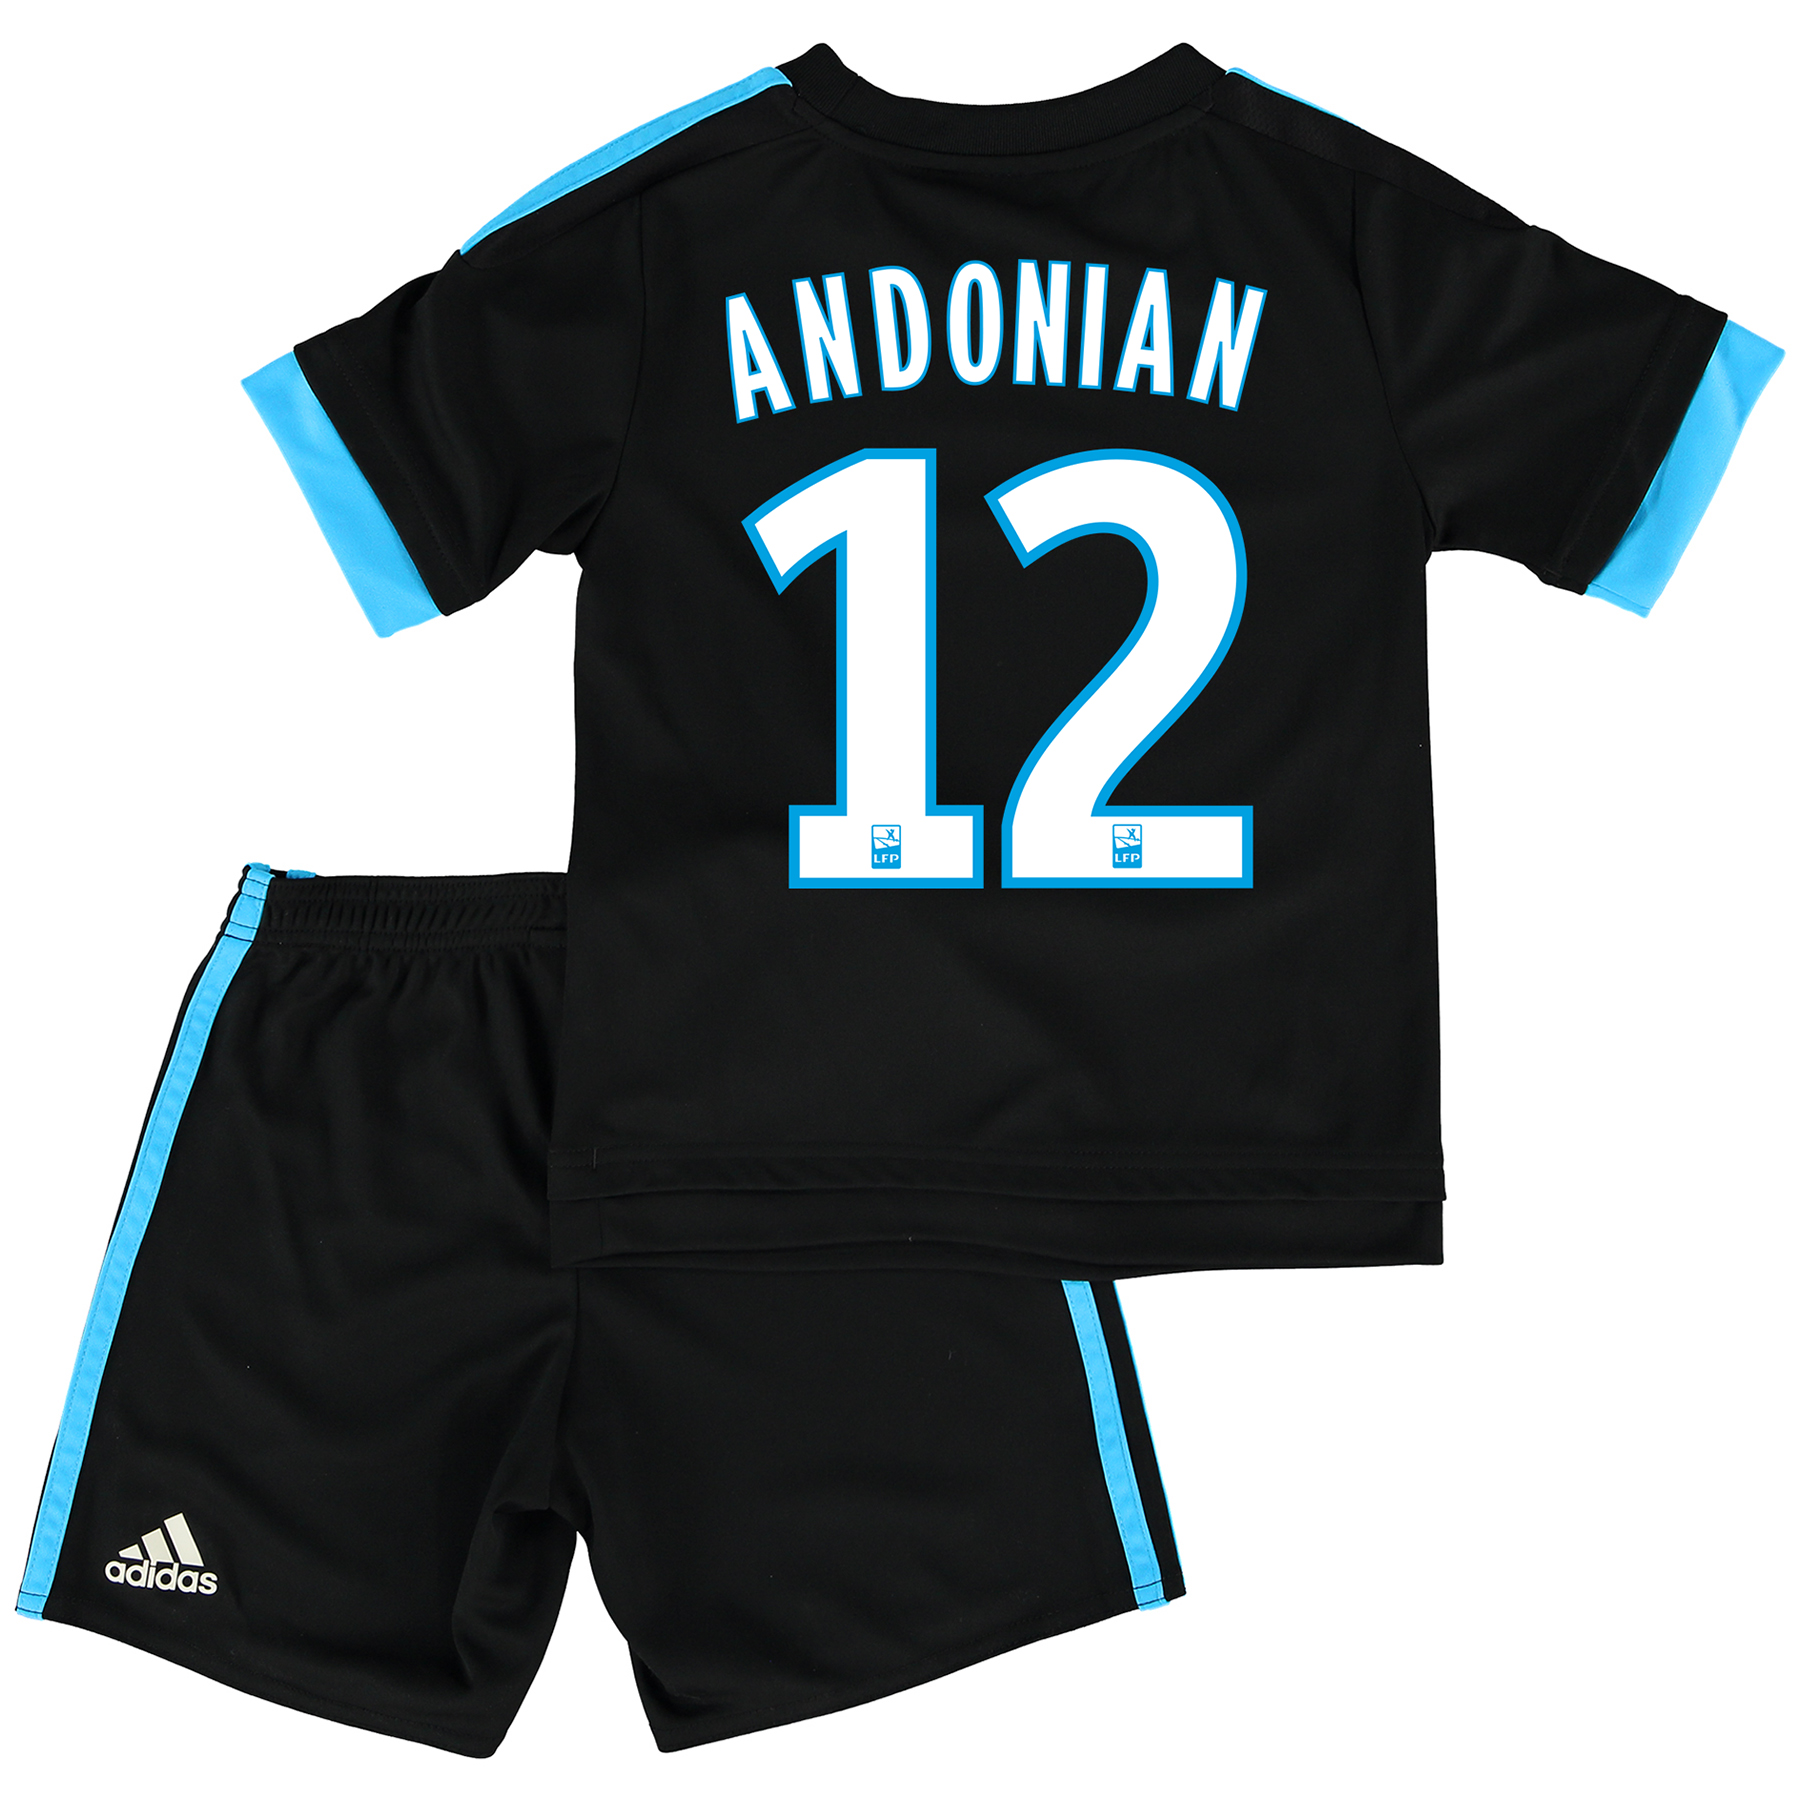 Olympique de Marseille Away Kit 2015/16 - Infants with Andonian 12 printing